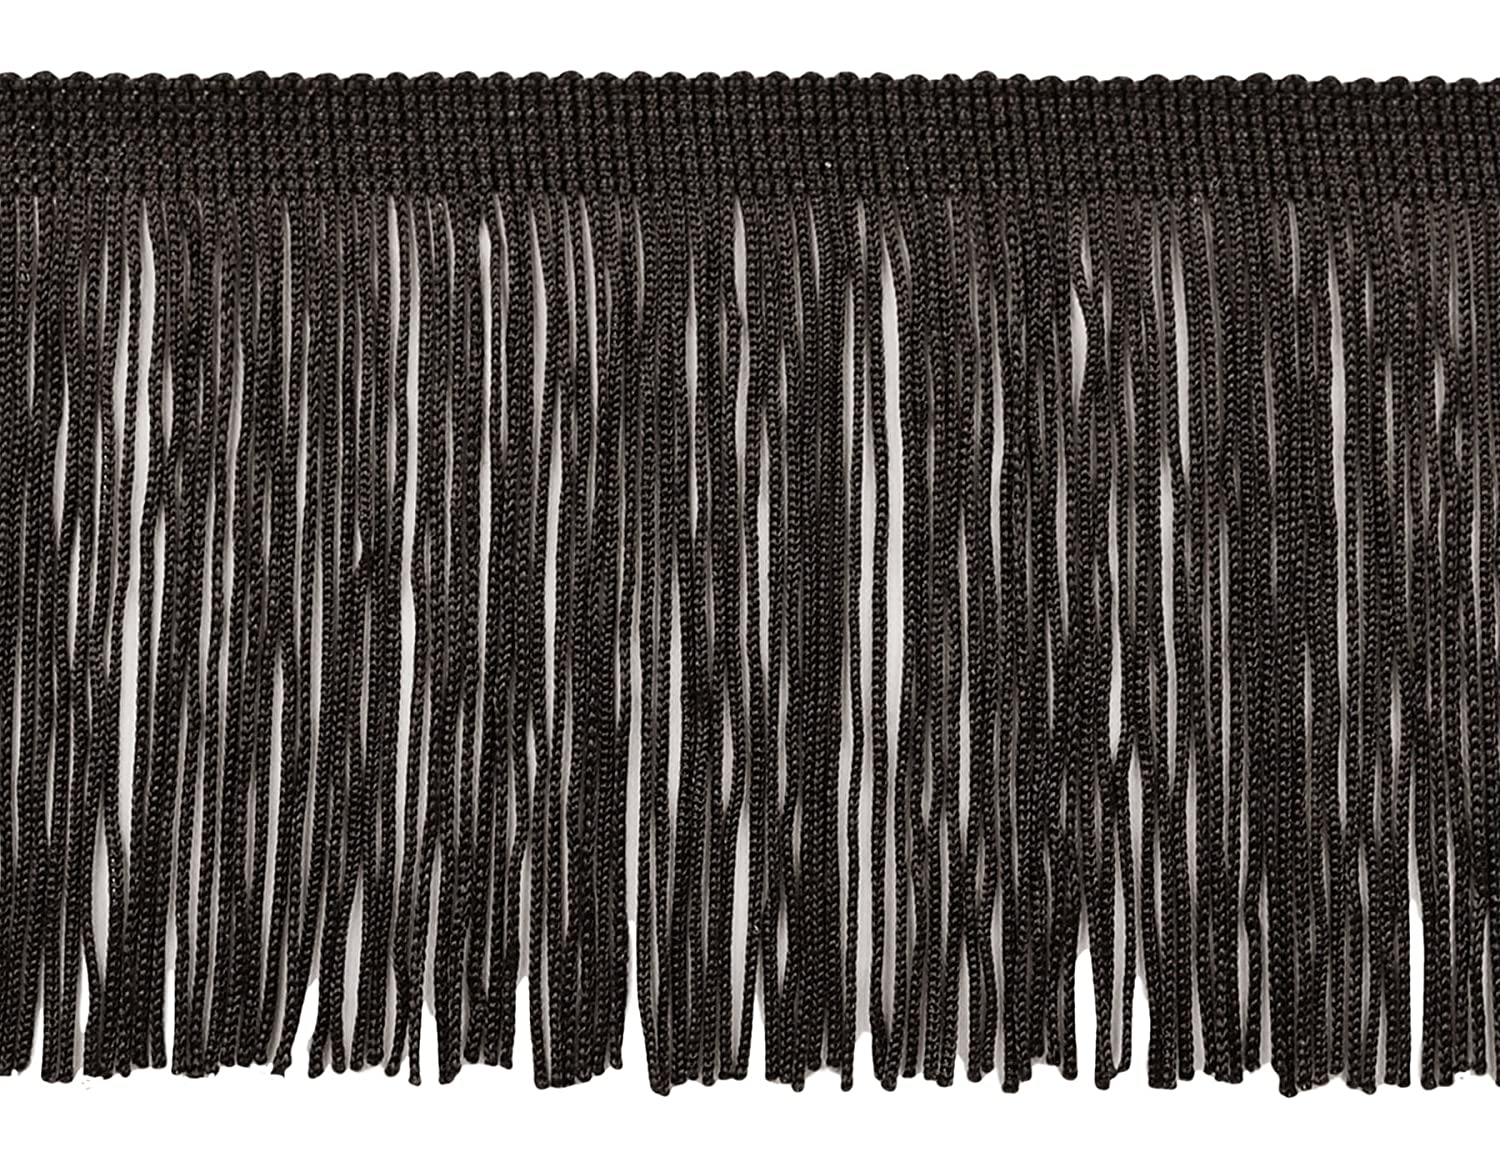 DecoPro 11 Yard Value Pack of 4 Inch Long Chainette Fringe Trim, Style# CF04 Color Black - K9 (32.5 Feet/10M)